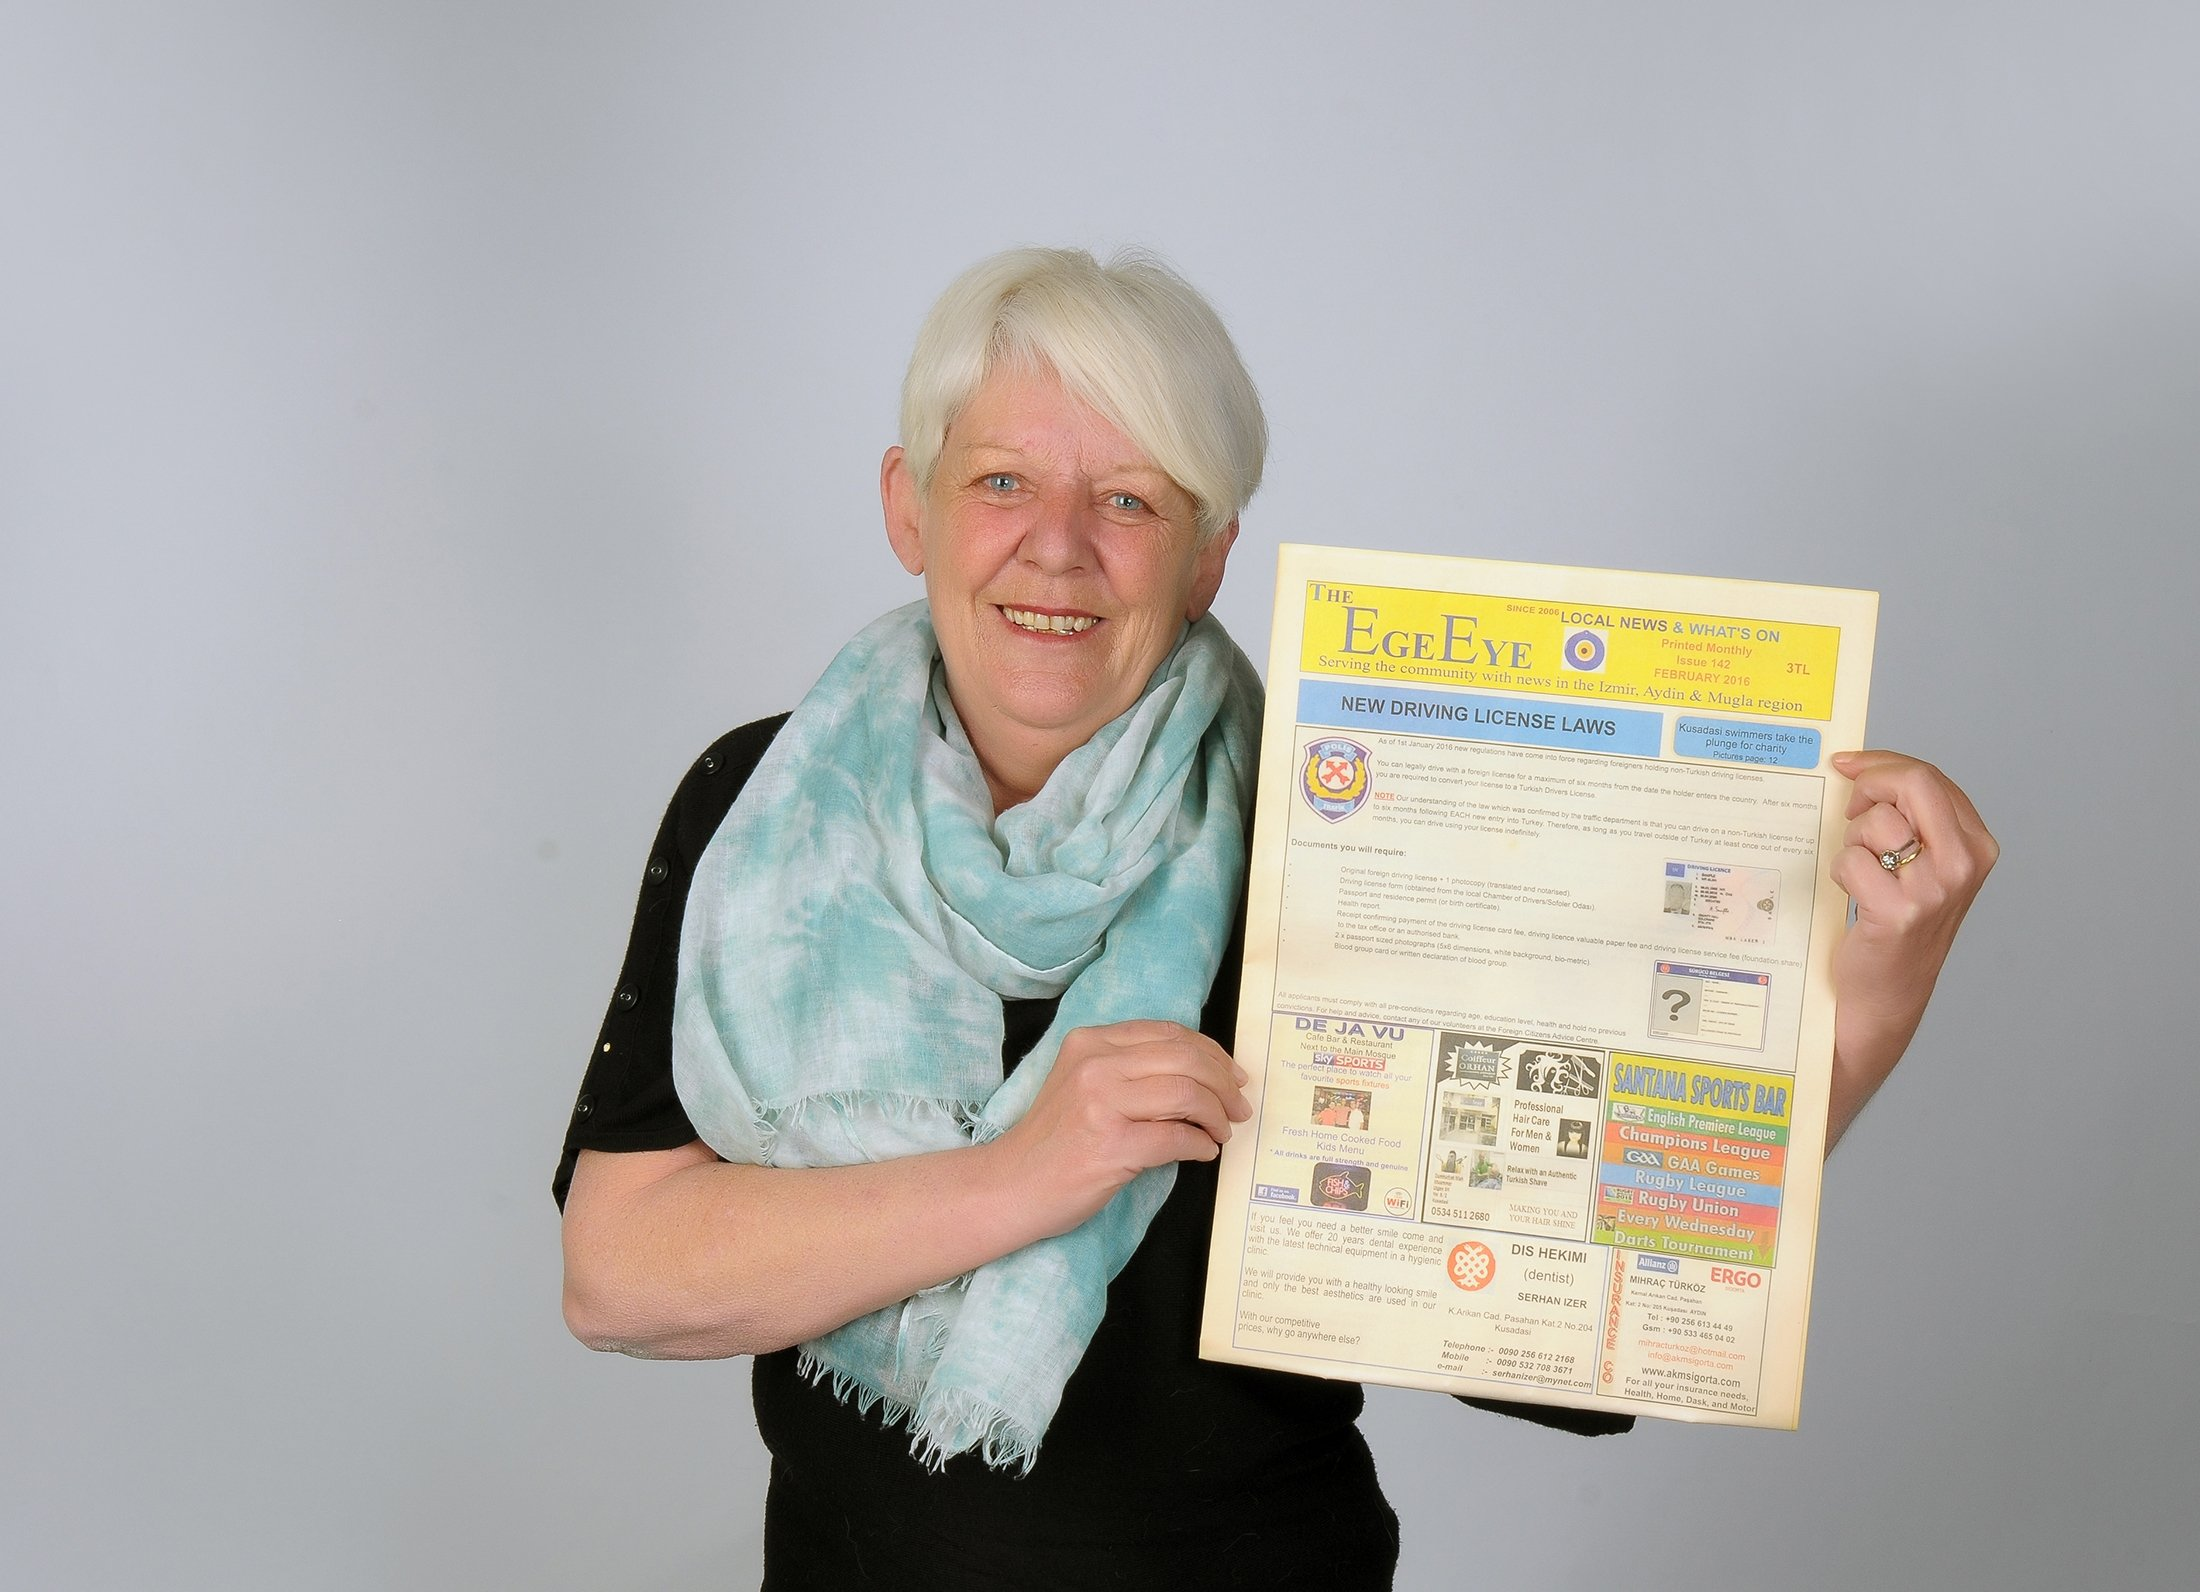 Lucille Shone, aka Lucy, holds the first edition of  The Ege Eye.